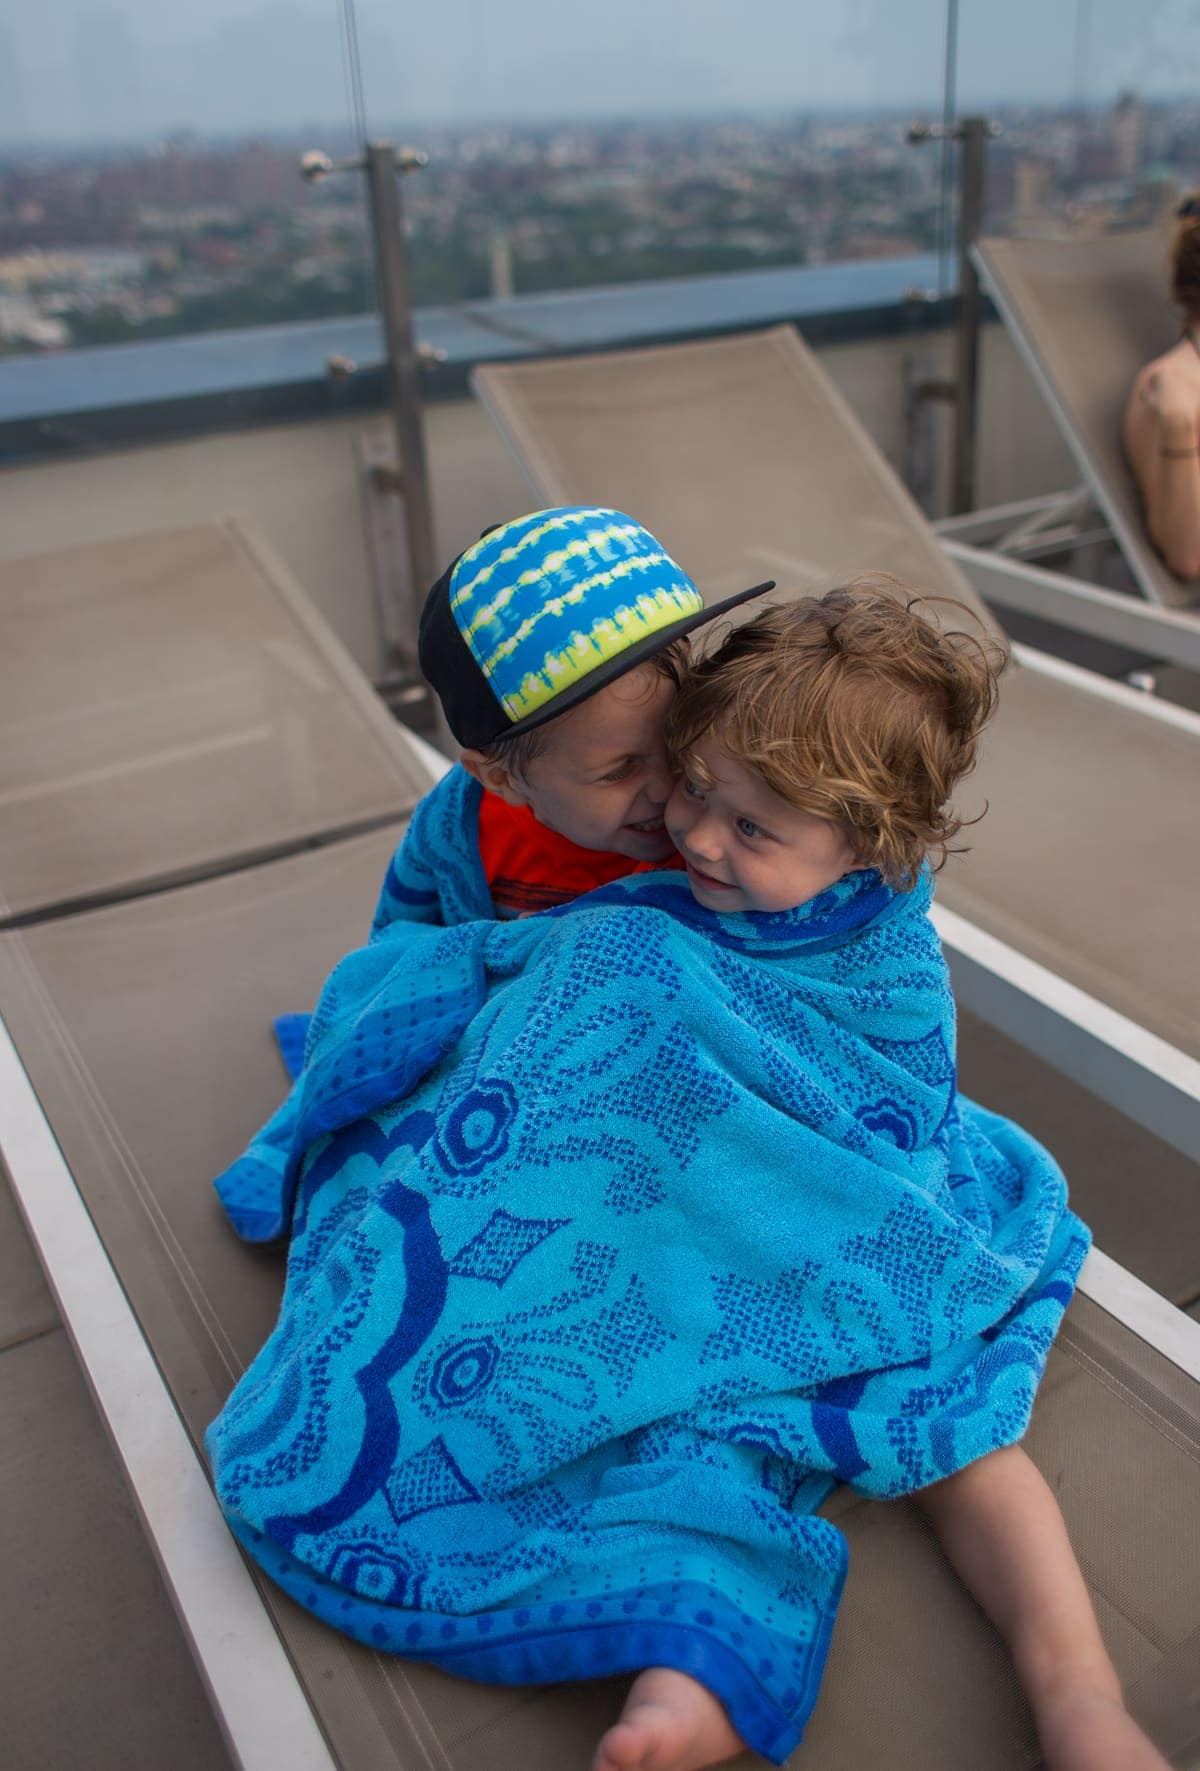 Eddie and Blake wrapped up in a blue towel